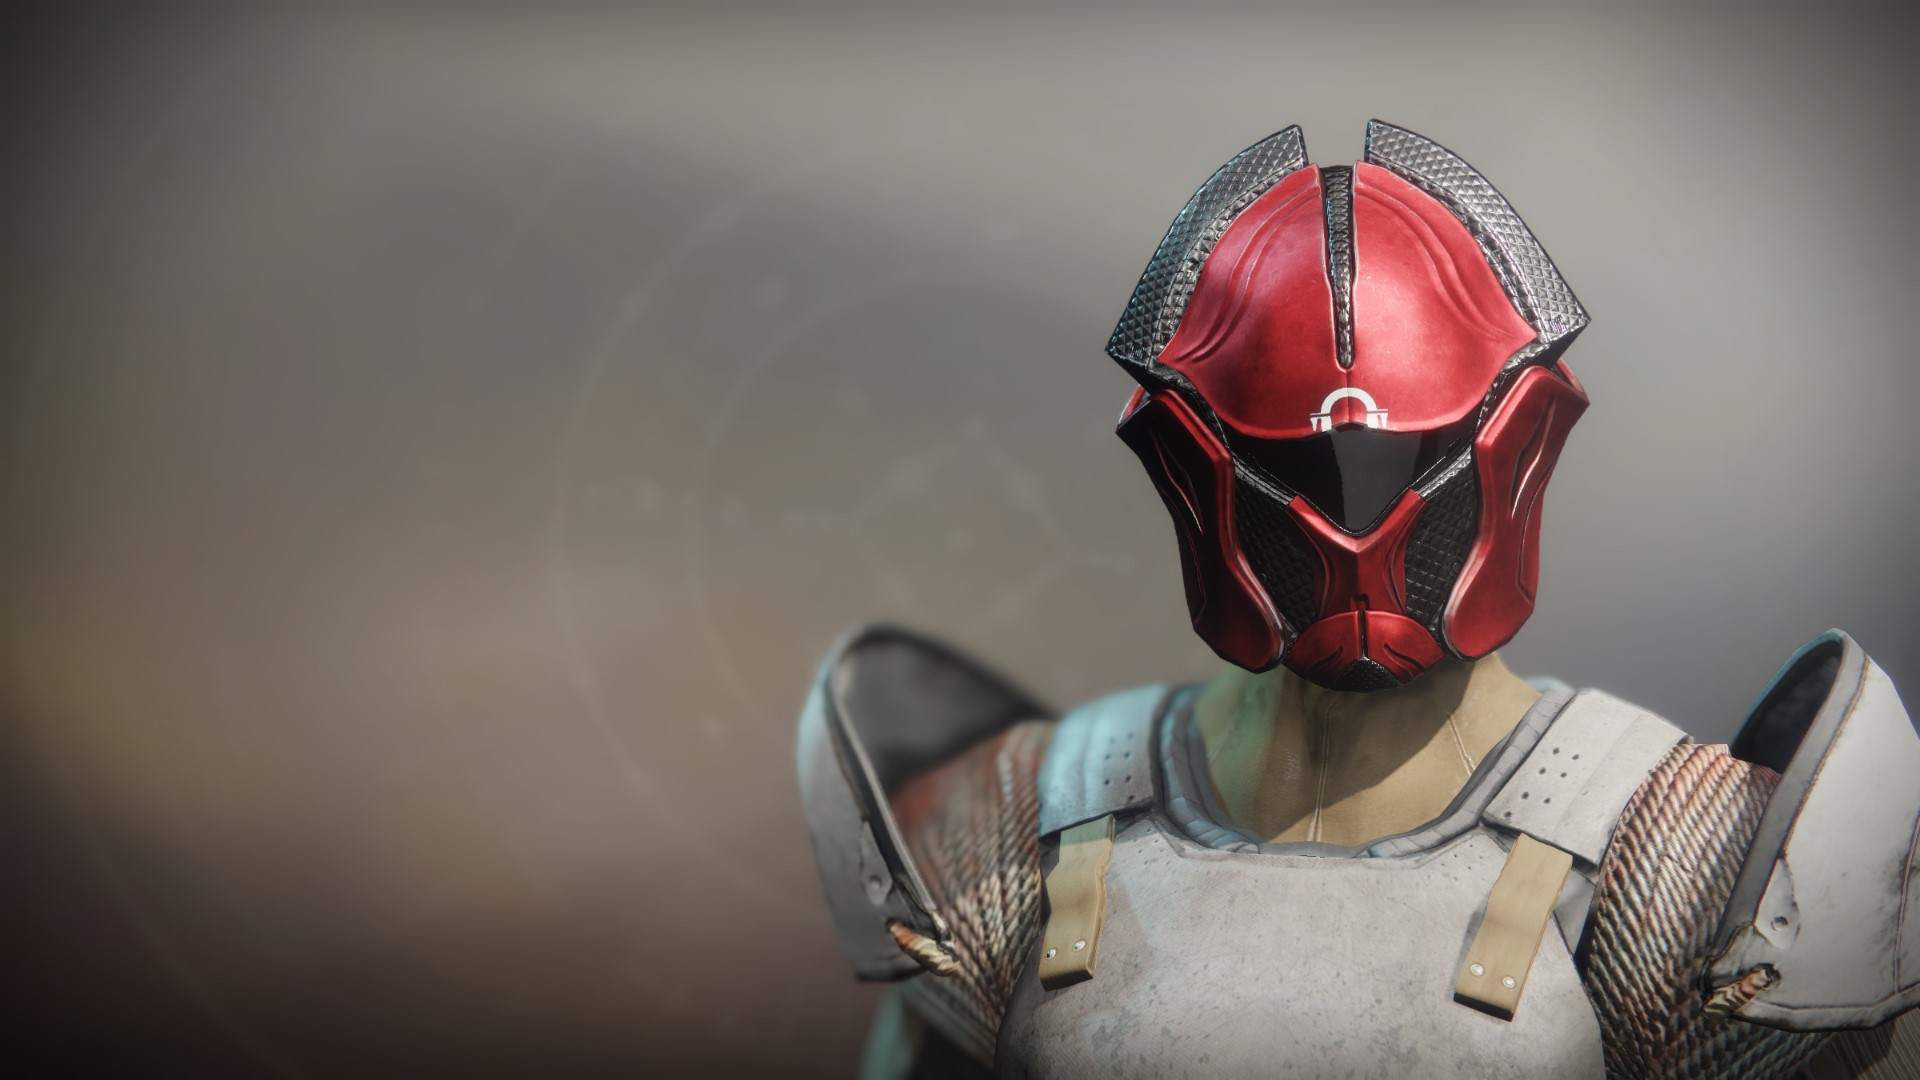 An in-game render of the Bulletsmith's Ire Helm.